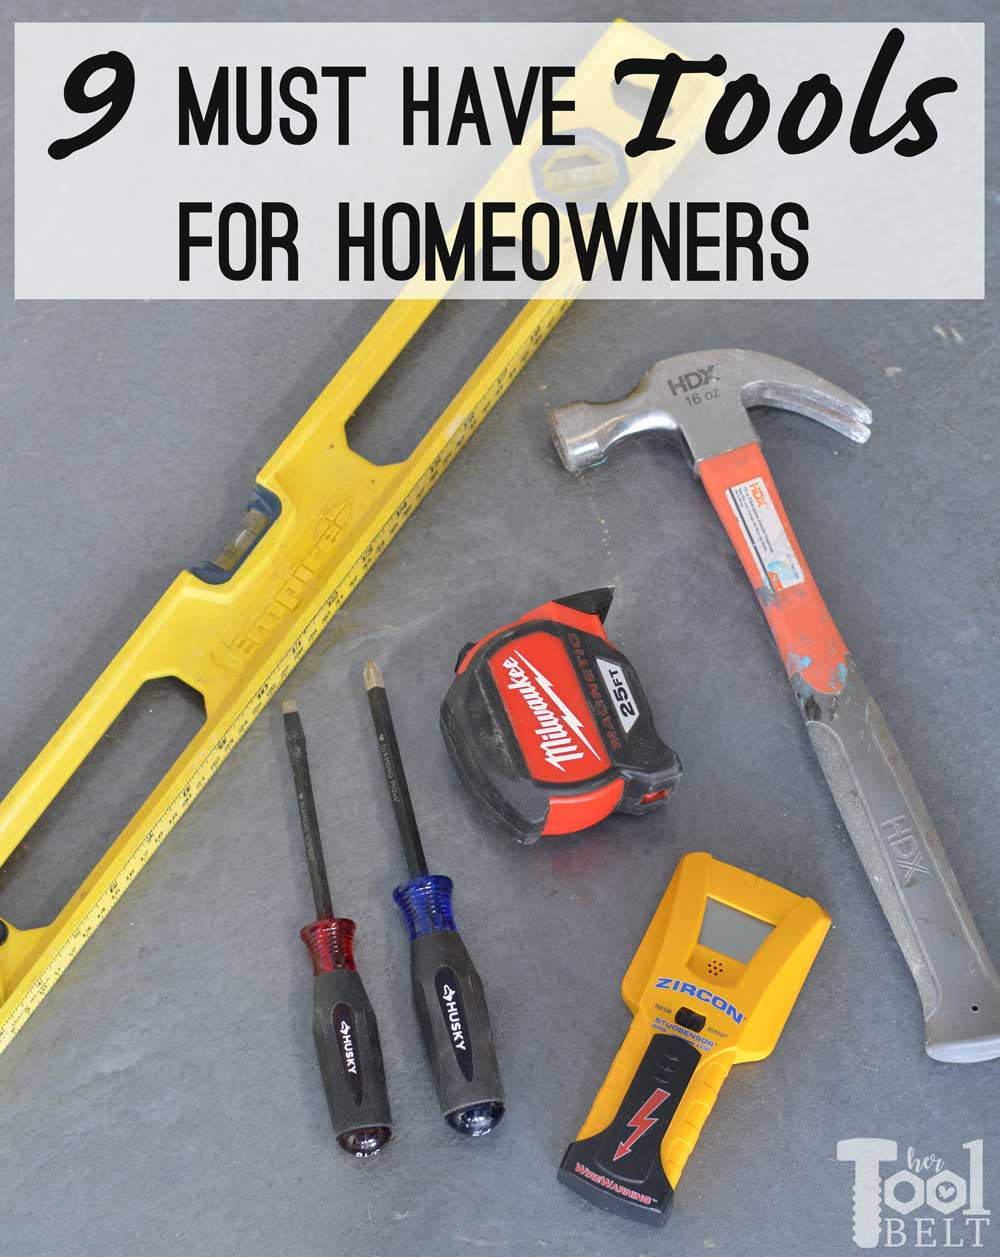 9 Must Have Tools for Homeowners - Her Tool Belt